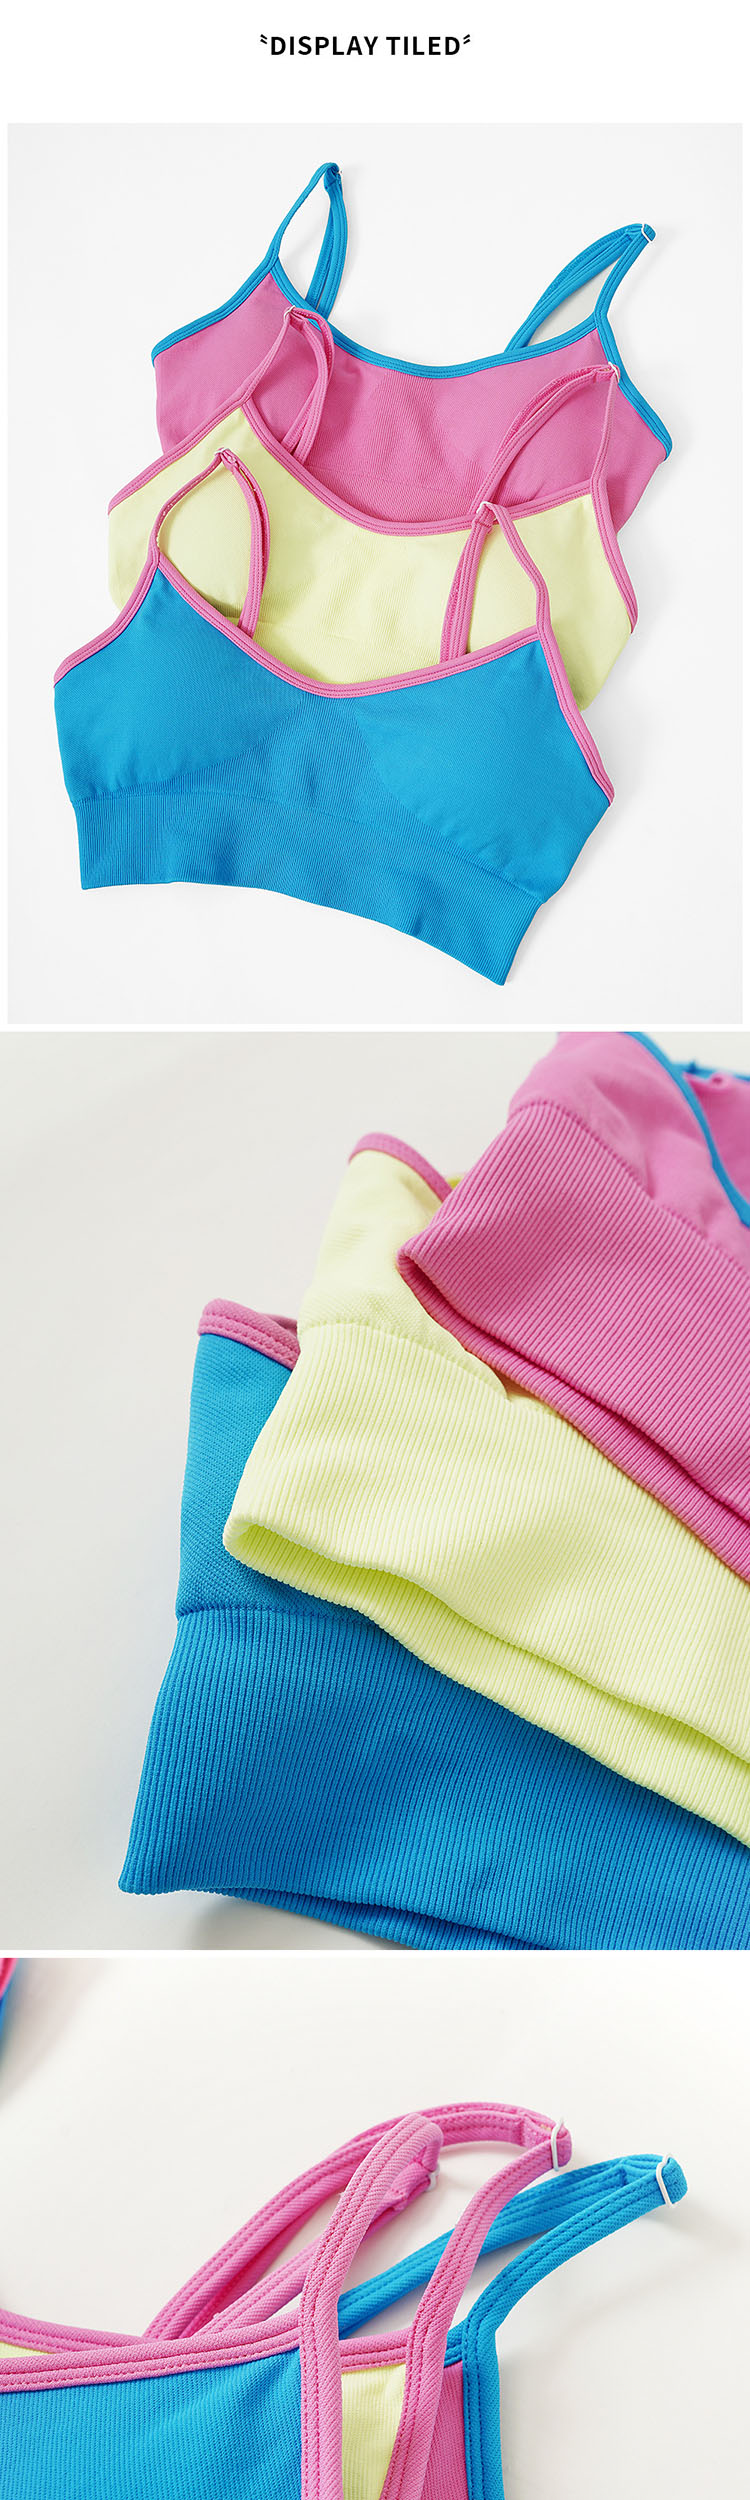 can adjust the degree of tightness of the clothes according to different occasions